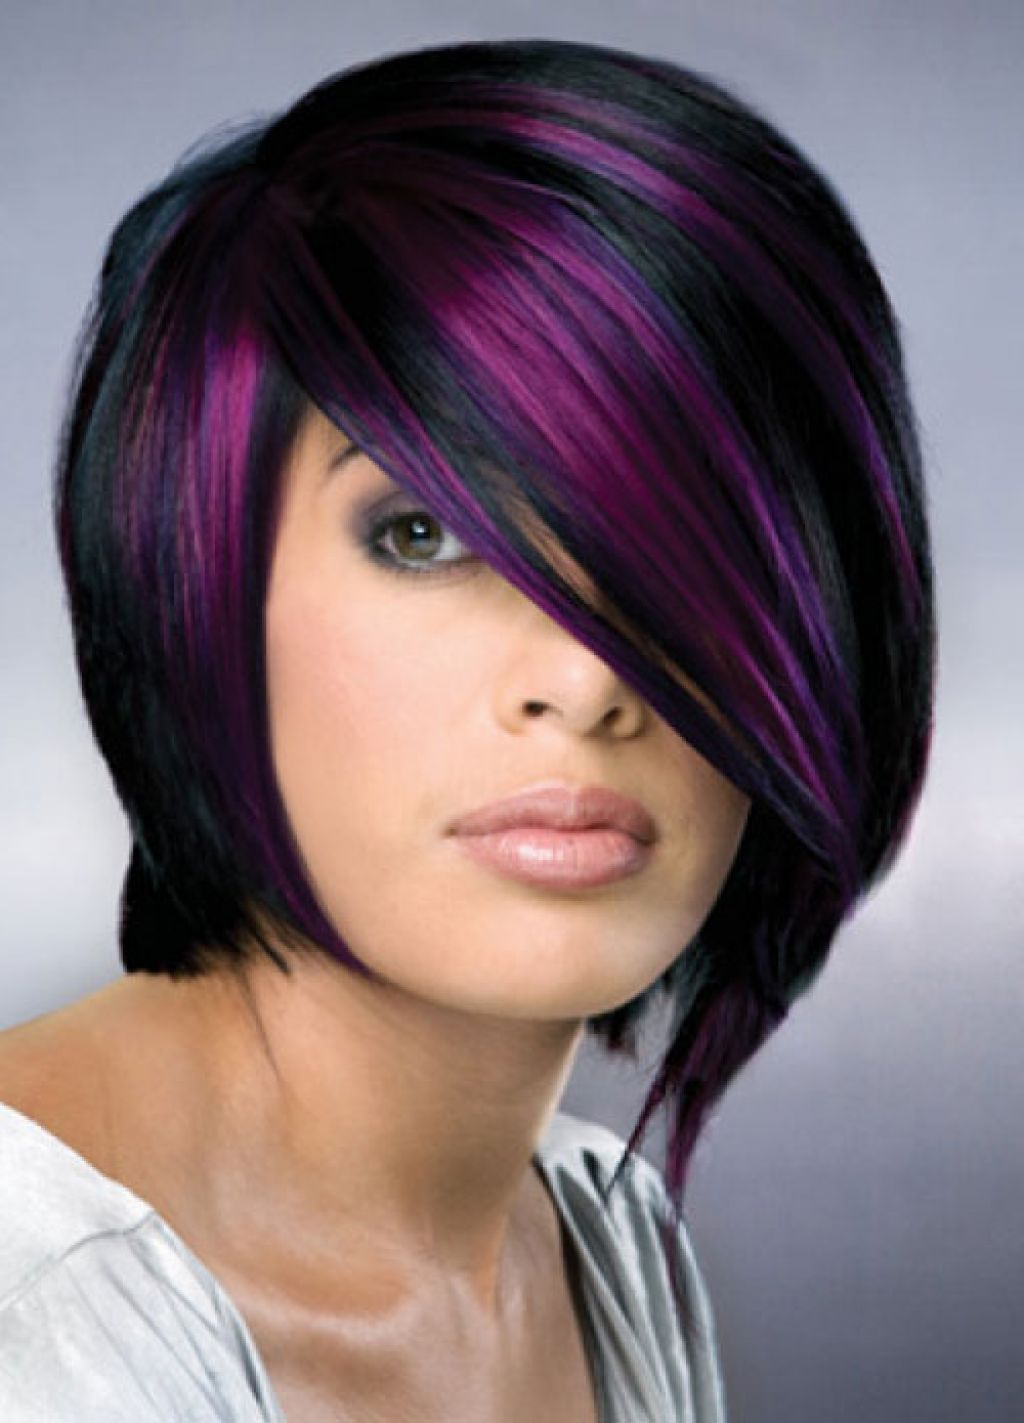 Black hair with purple highlights new hairstyles trend purple black hair with purple highlights new hairstyles trend purple pmusecretfo Choice Image